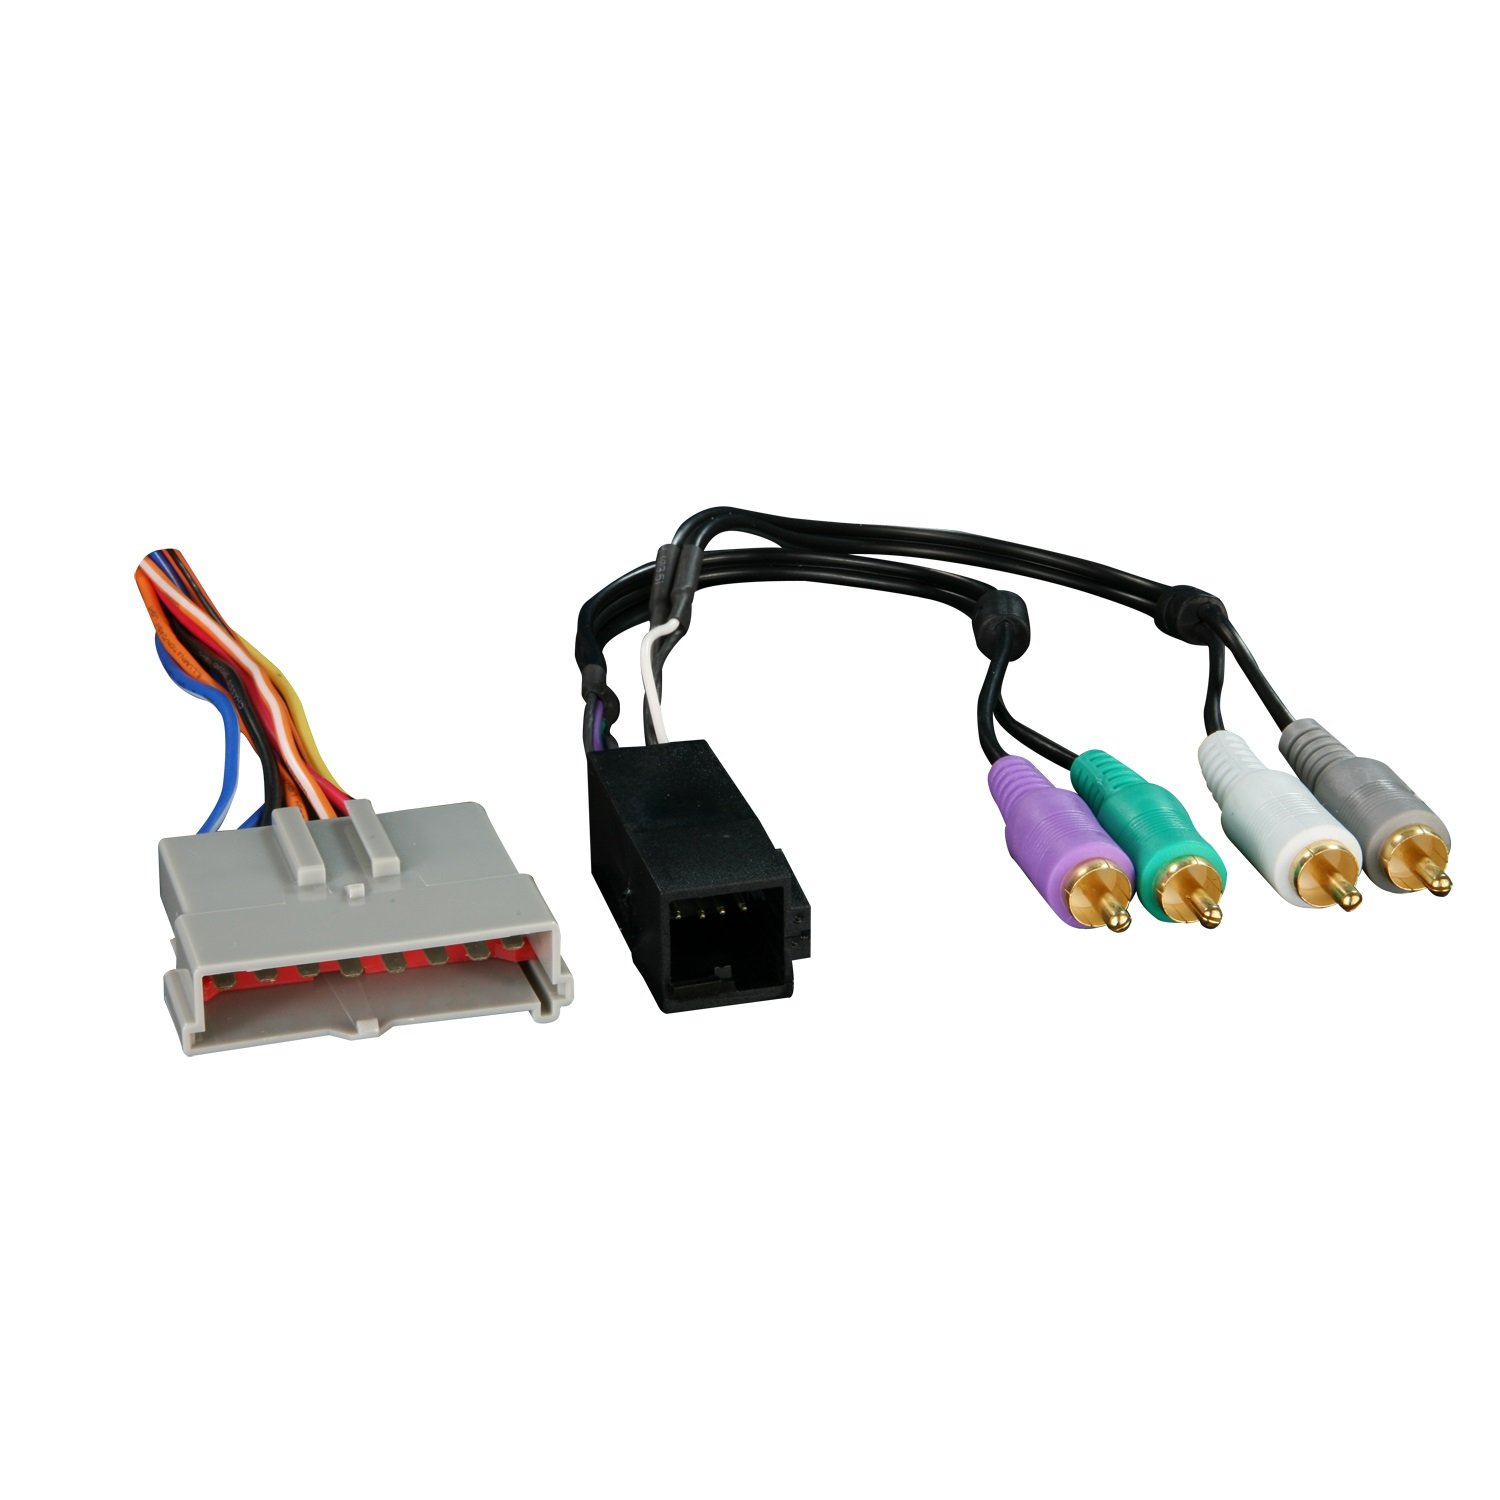 61dBSPZoitL._SL1500_ amazon com metra 70 5510 factory amplifier integration harness ford integration wire harness at bayanpartner.co